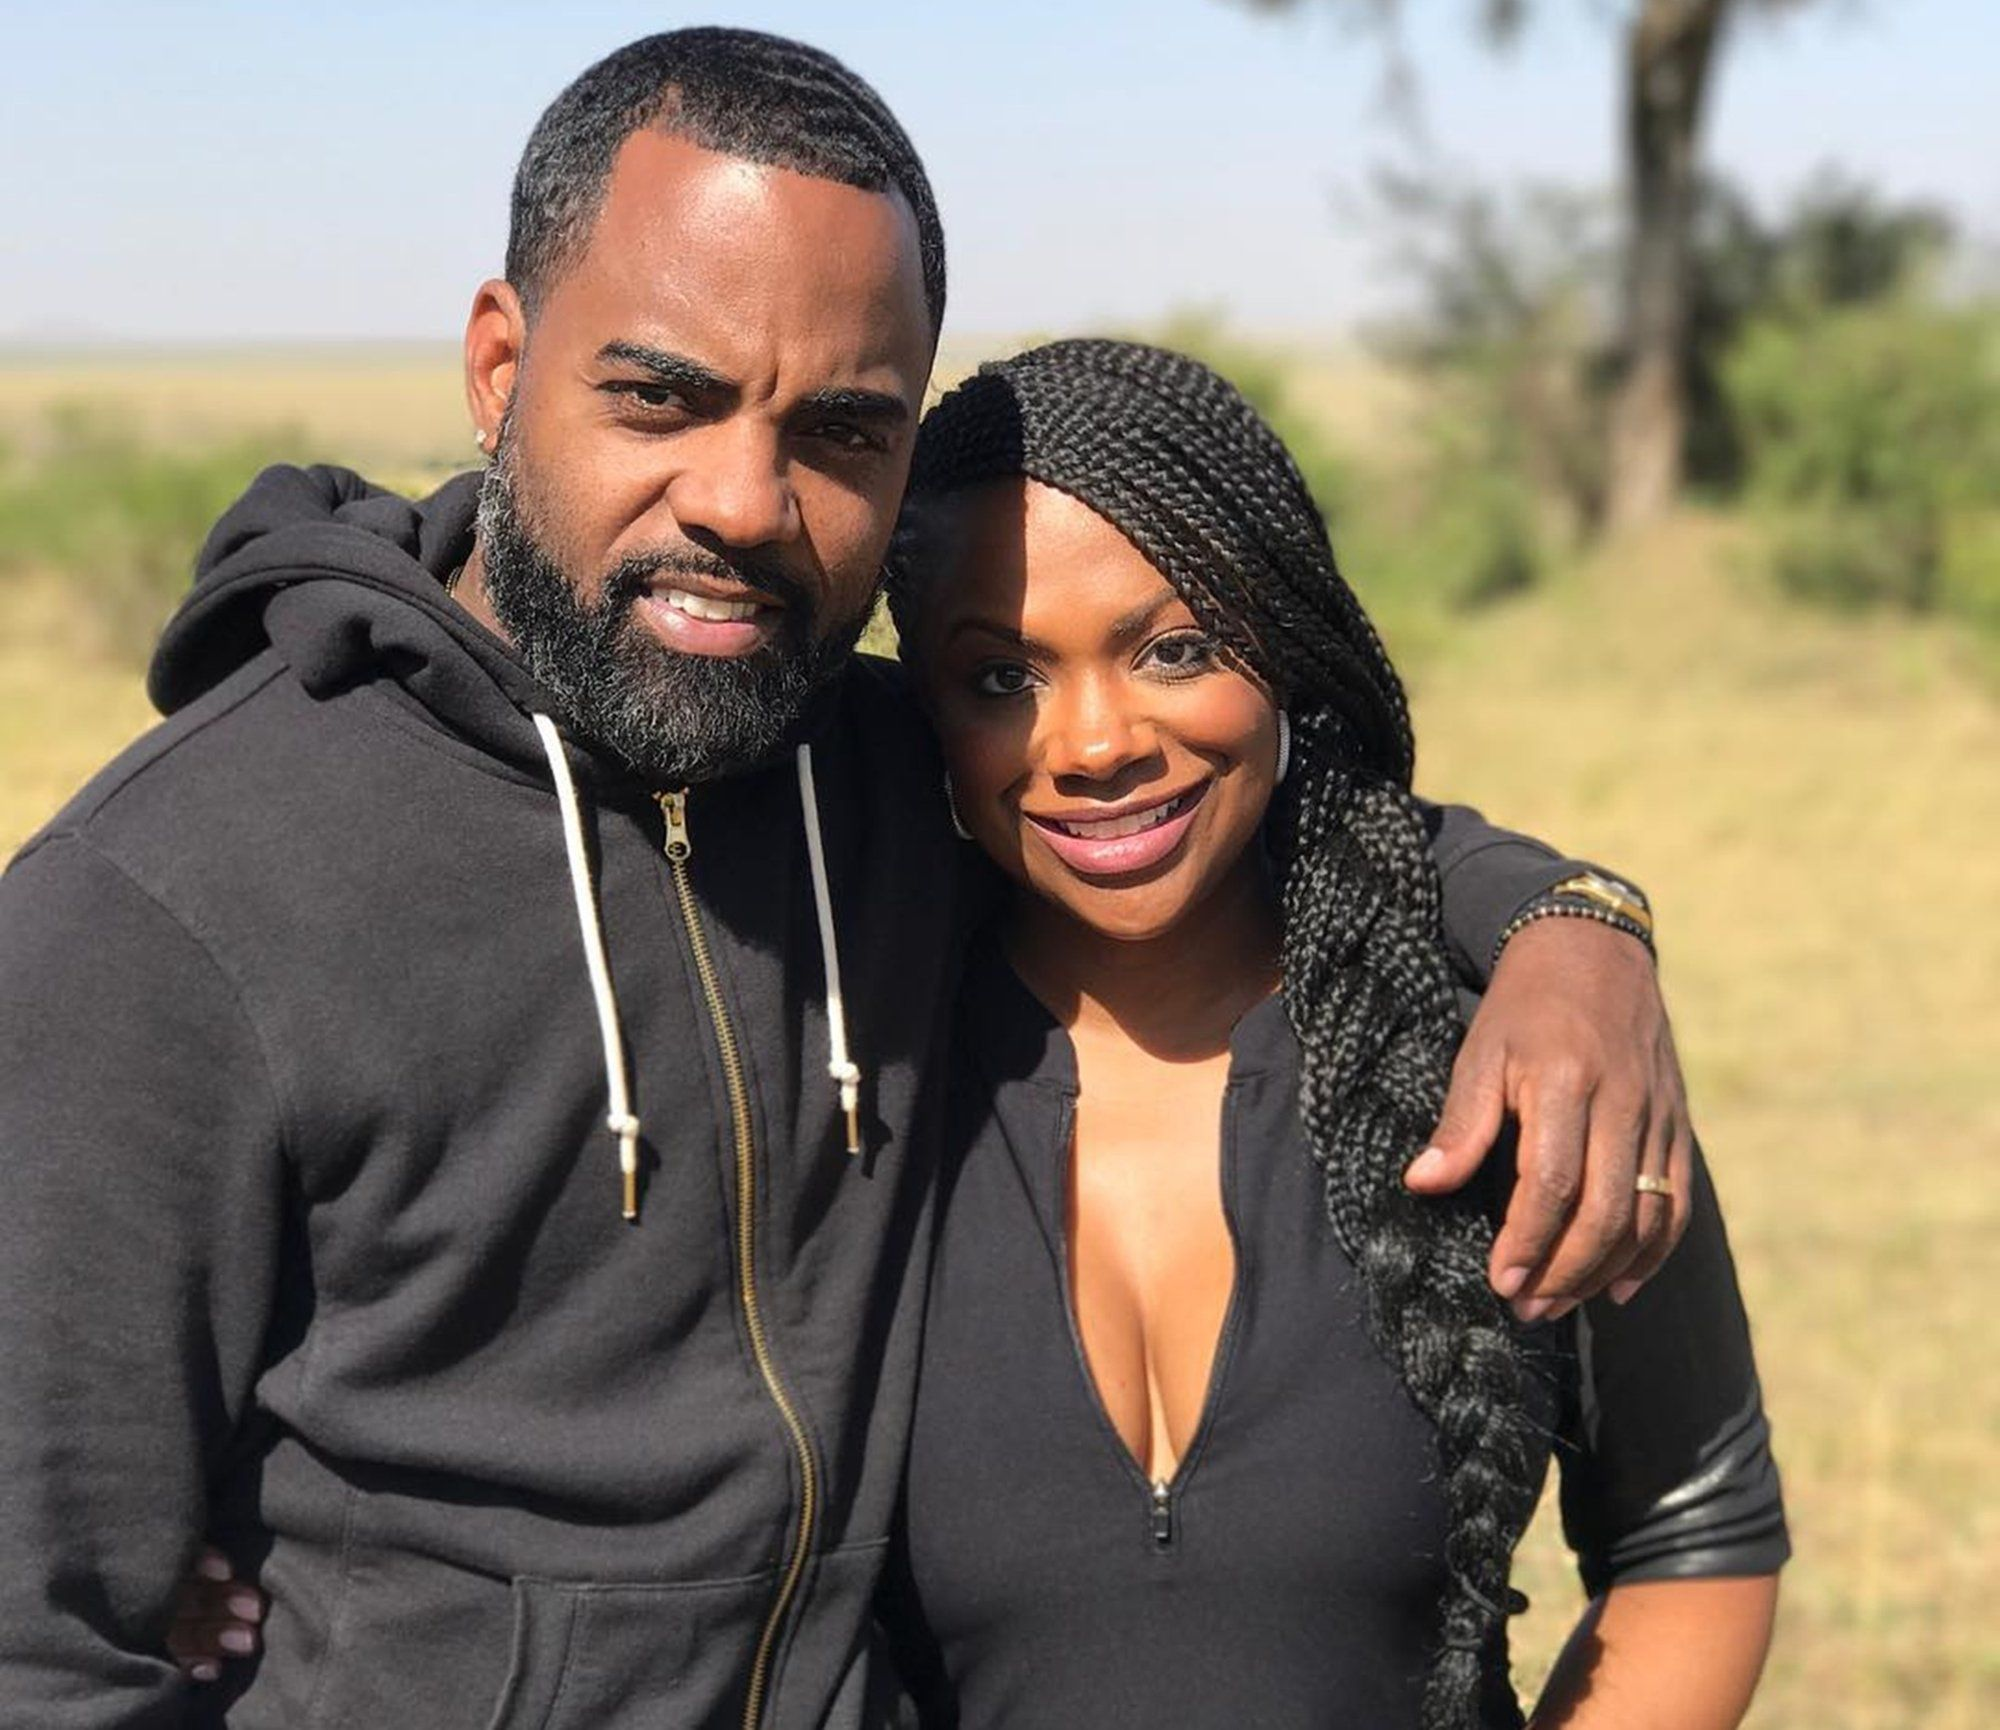 Kandi Burruss' Husband, Todd Tucker Offers His Gratitude To Fans